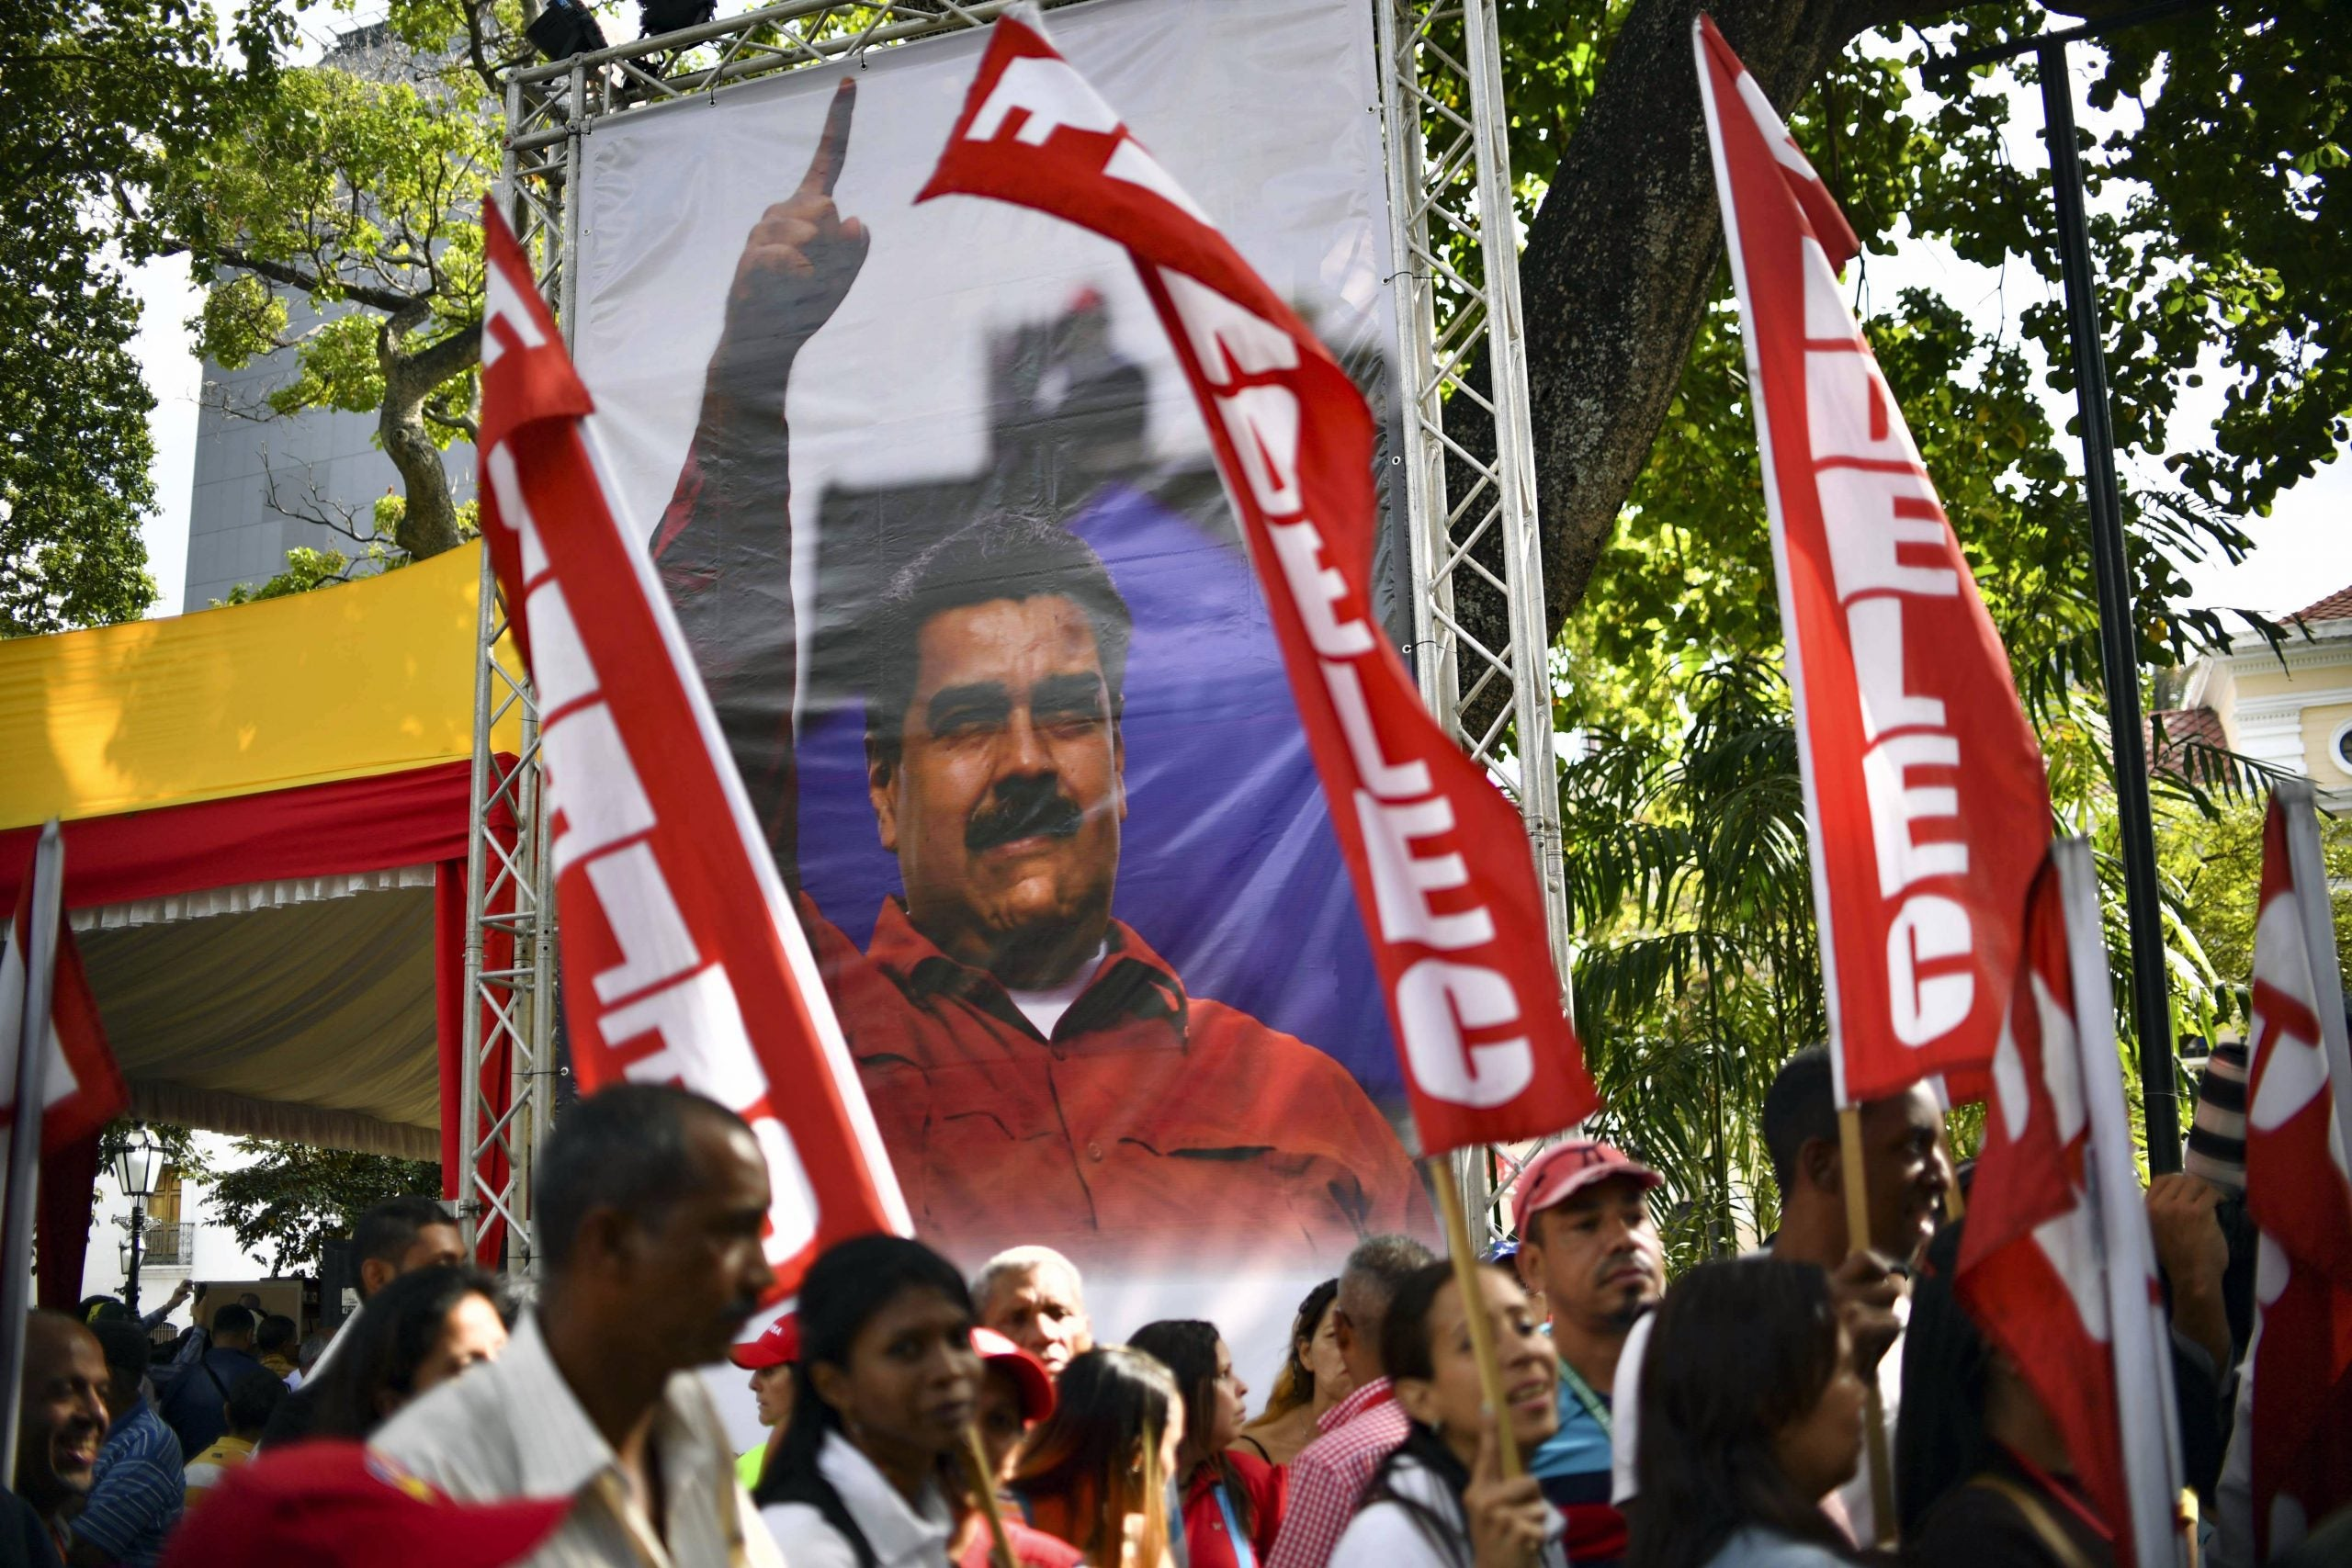 What the West gets wrong about Venezuela: it doesn't need ideology, it needs urgent care